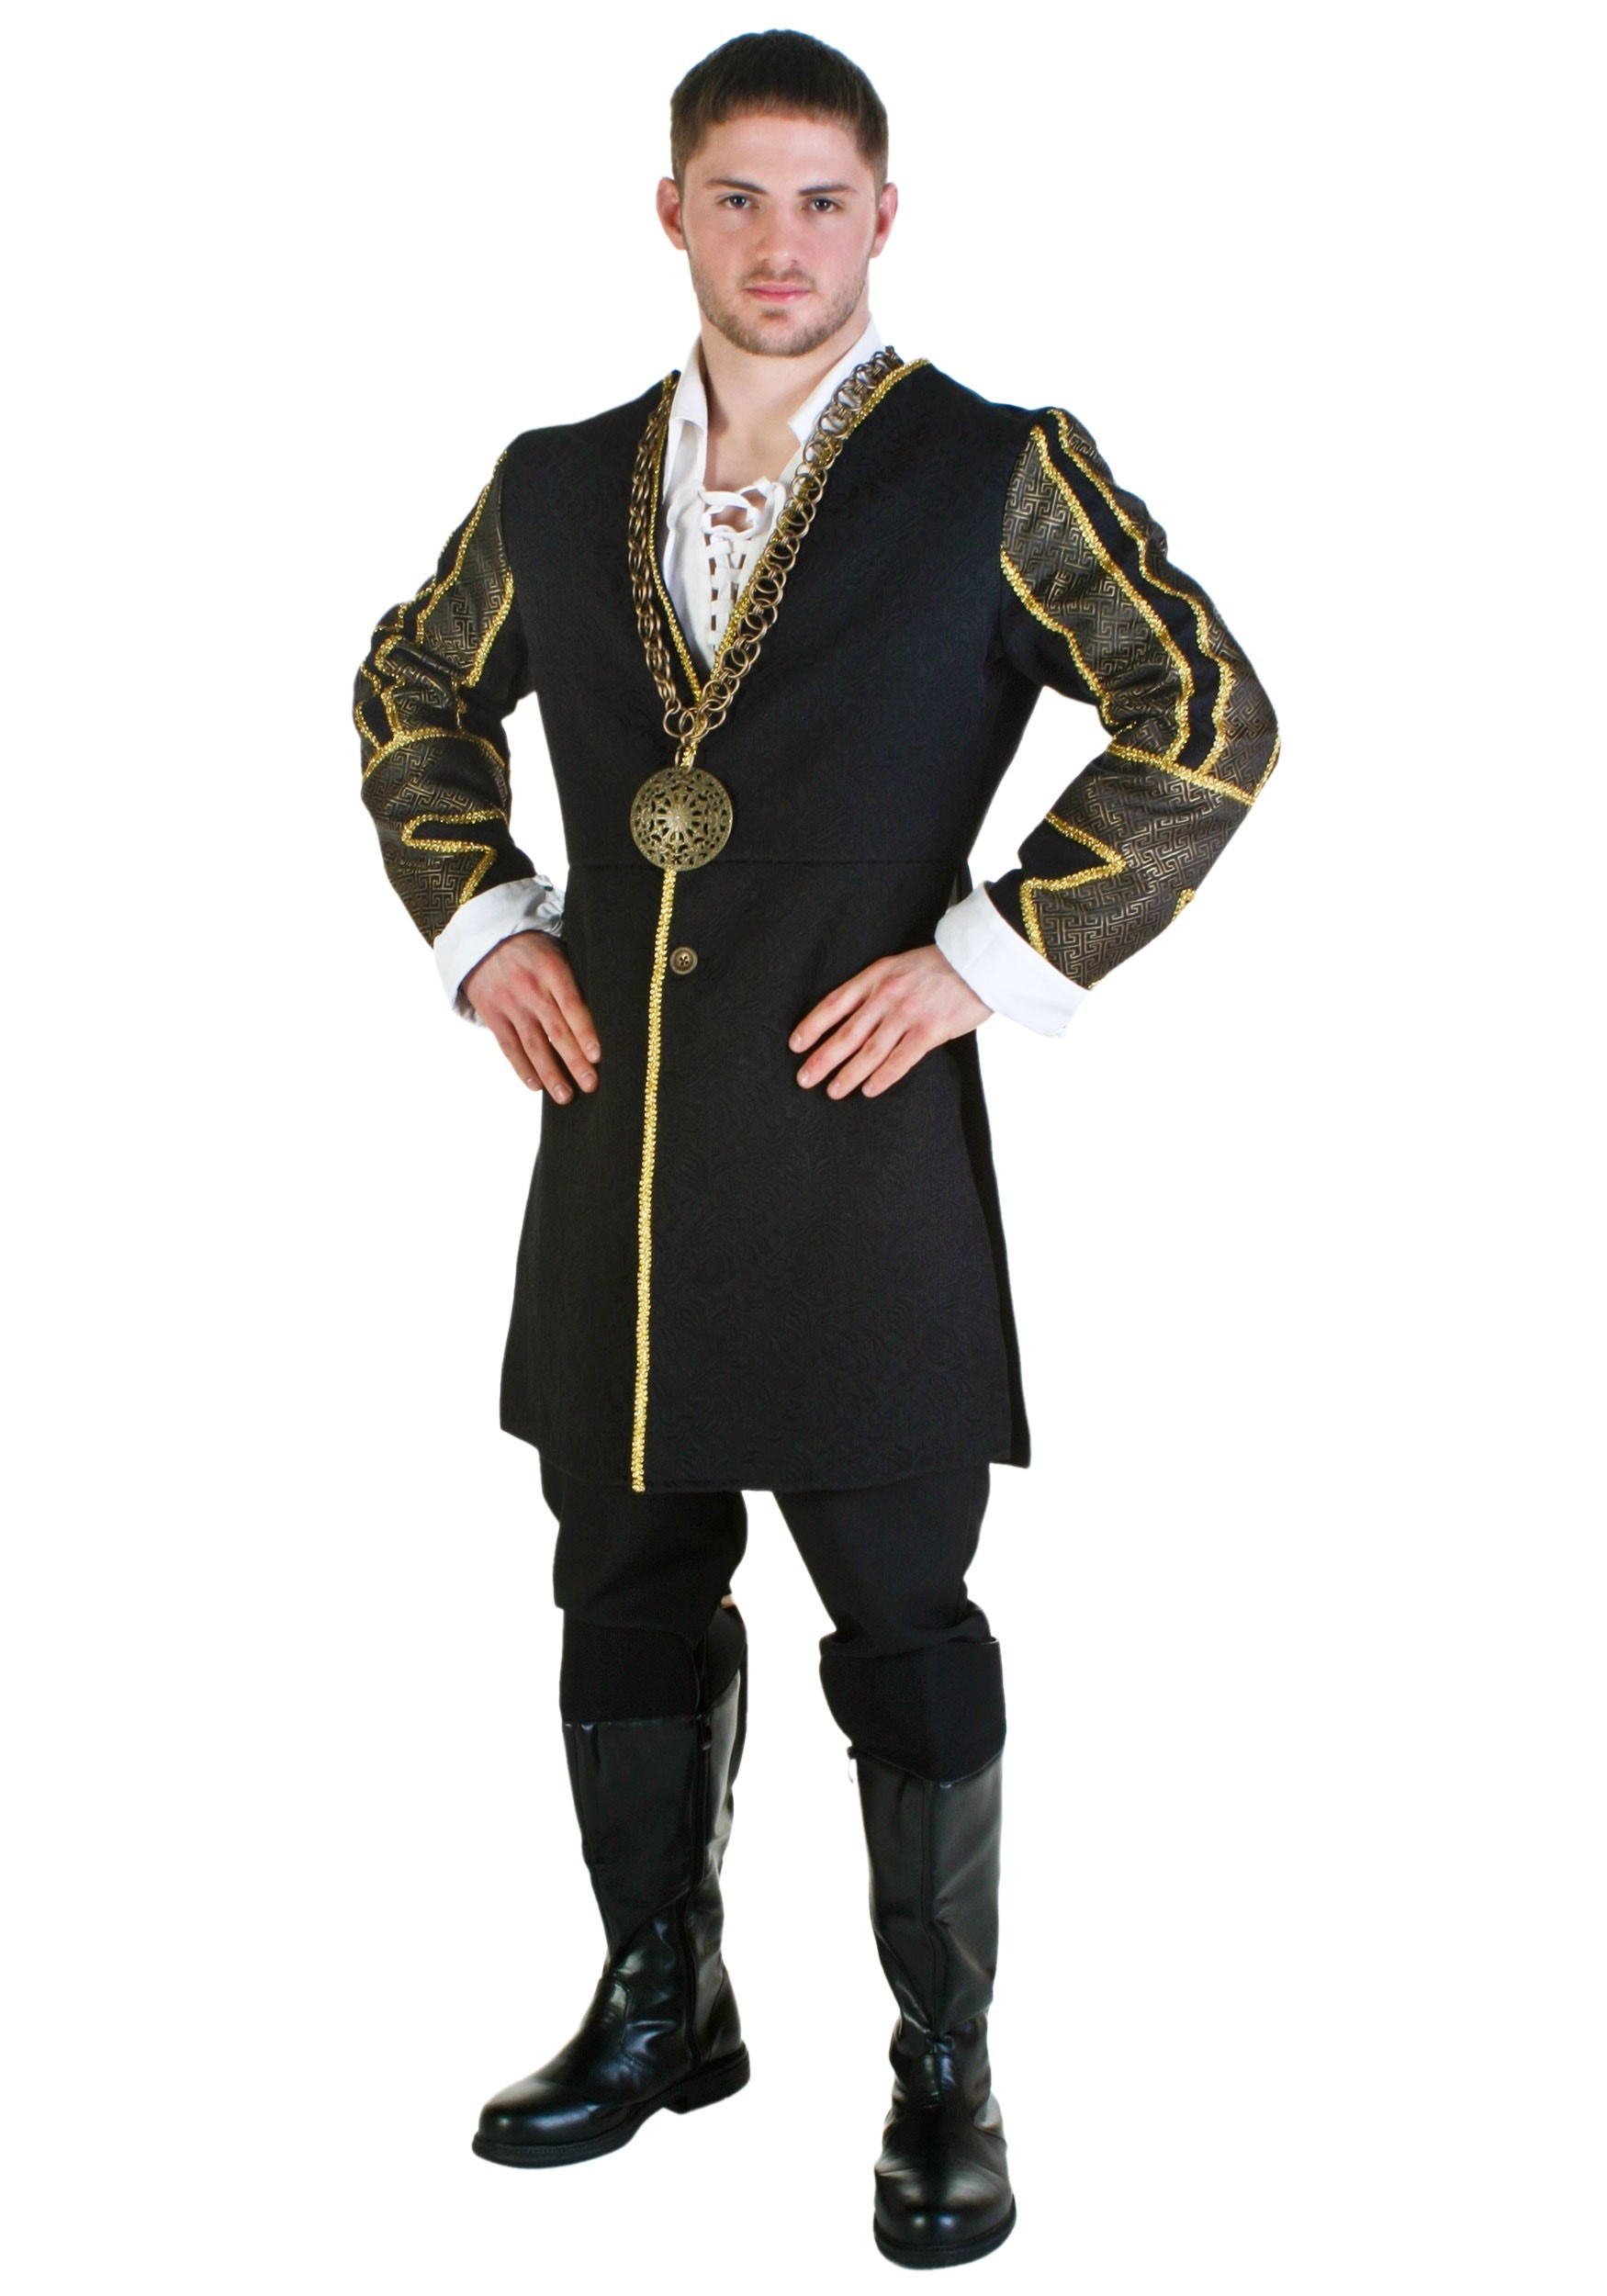 9efe4be054d King and Queen Costumes - Royal King Halloween Costume